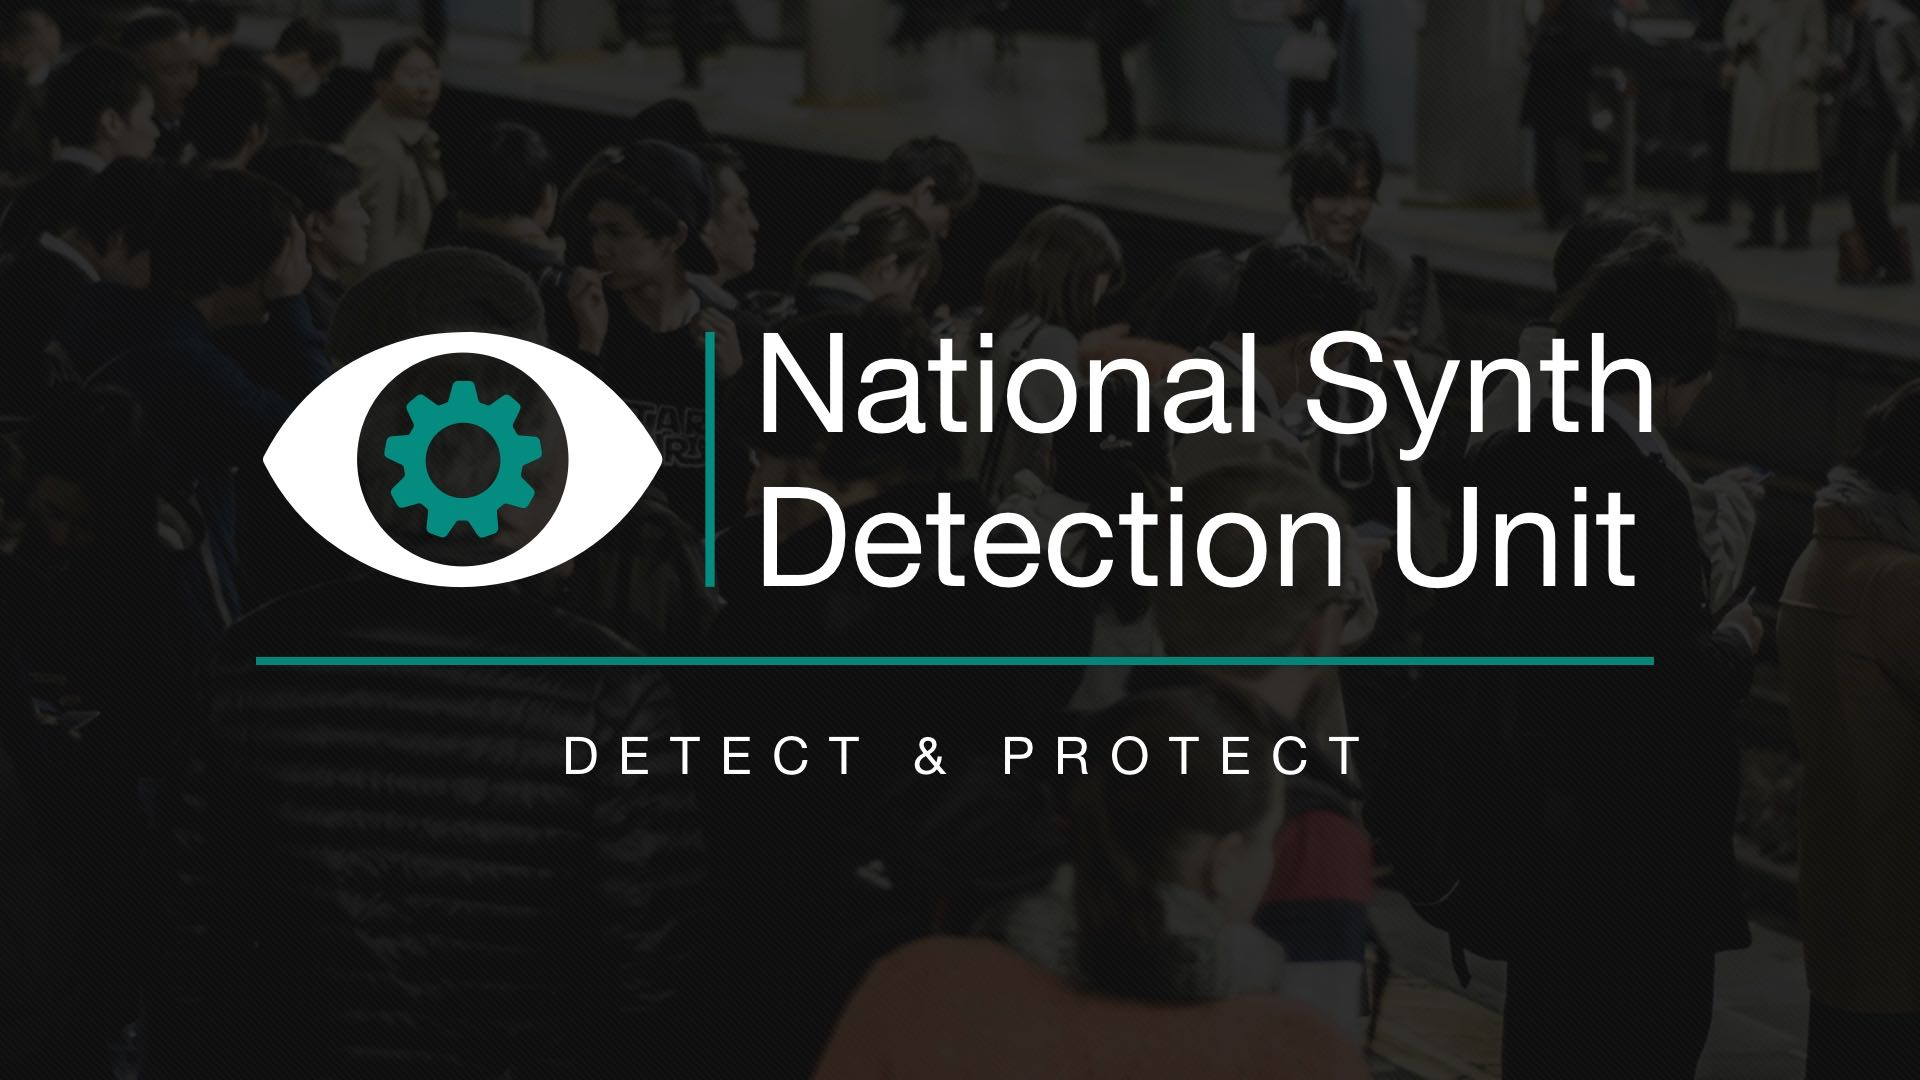 National Synth Detection Unit - Detect & Protect